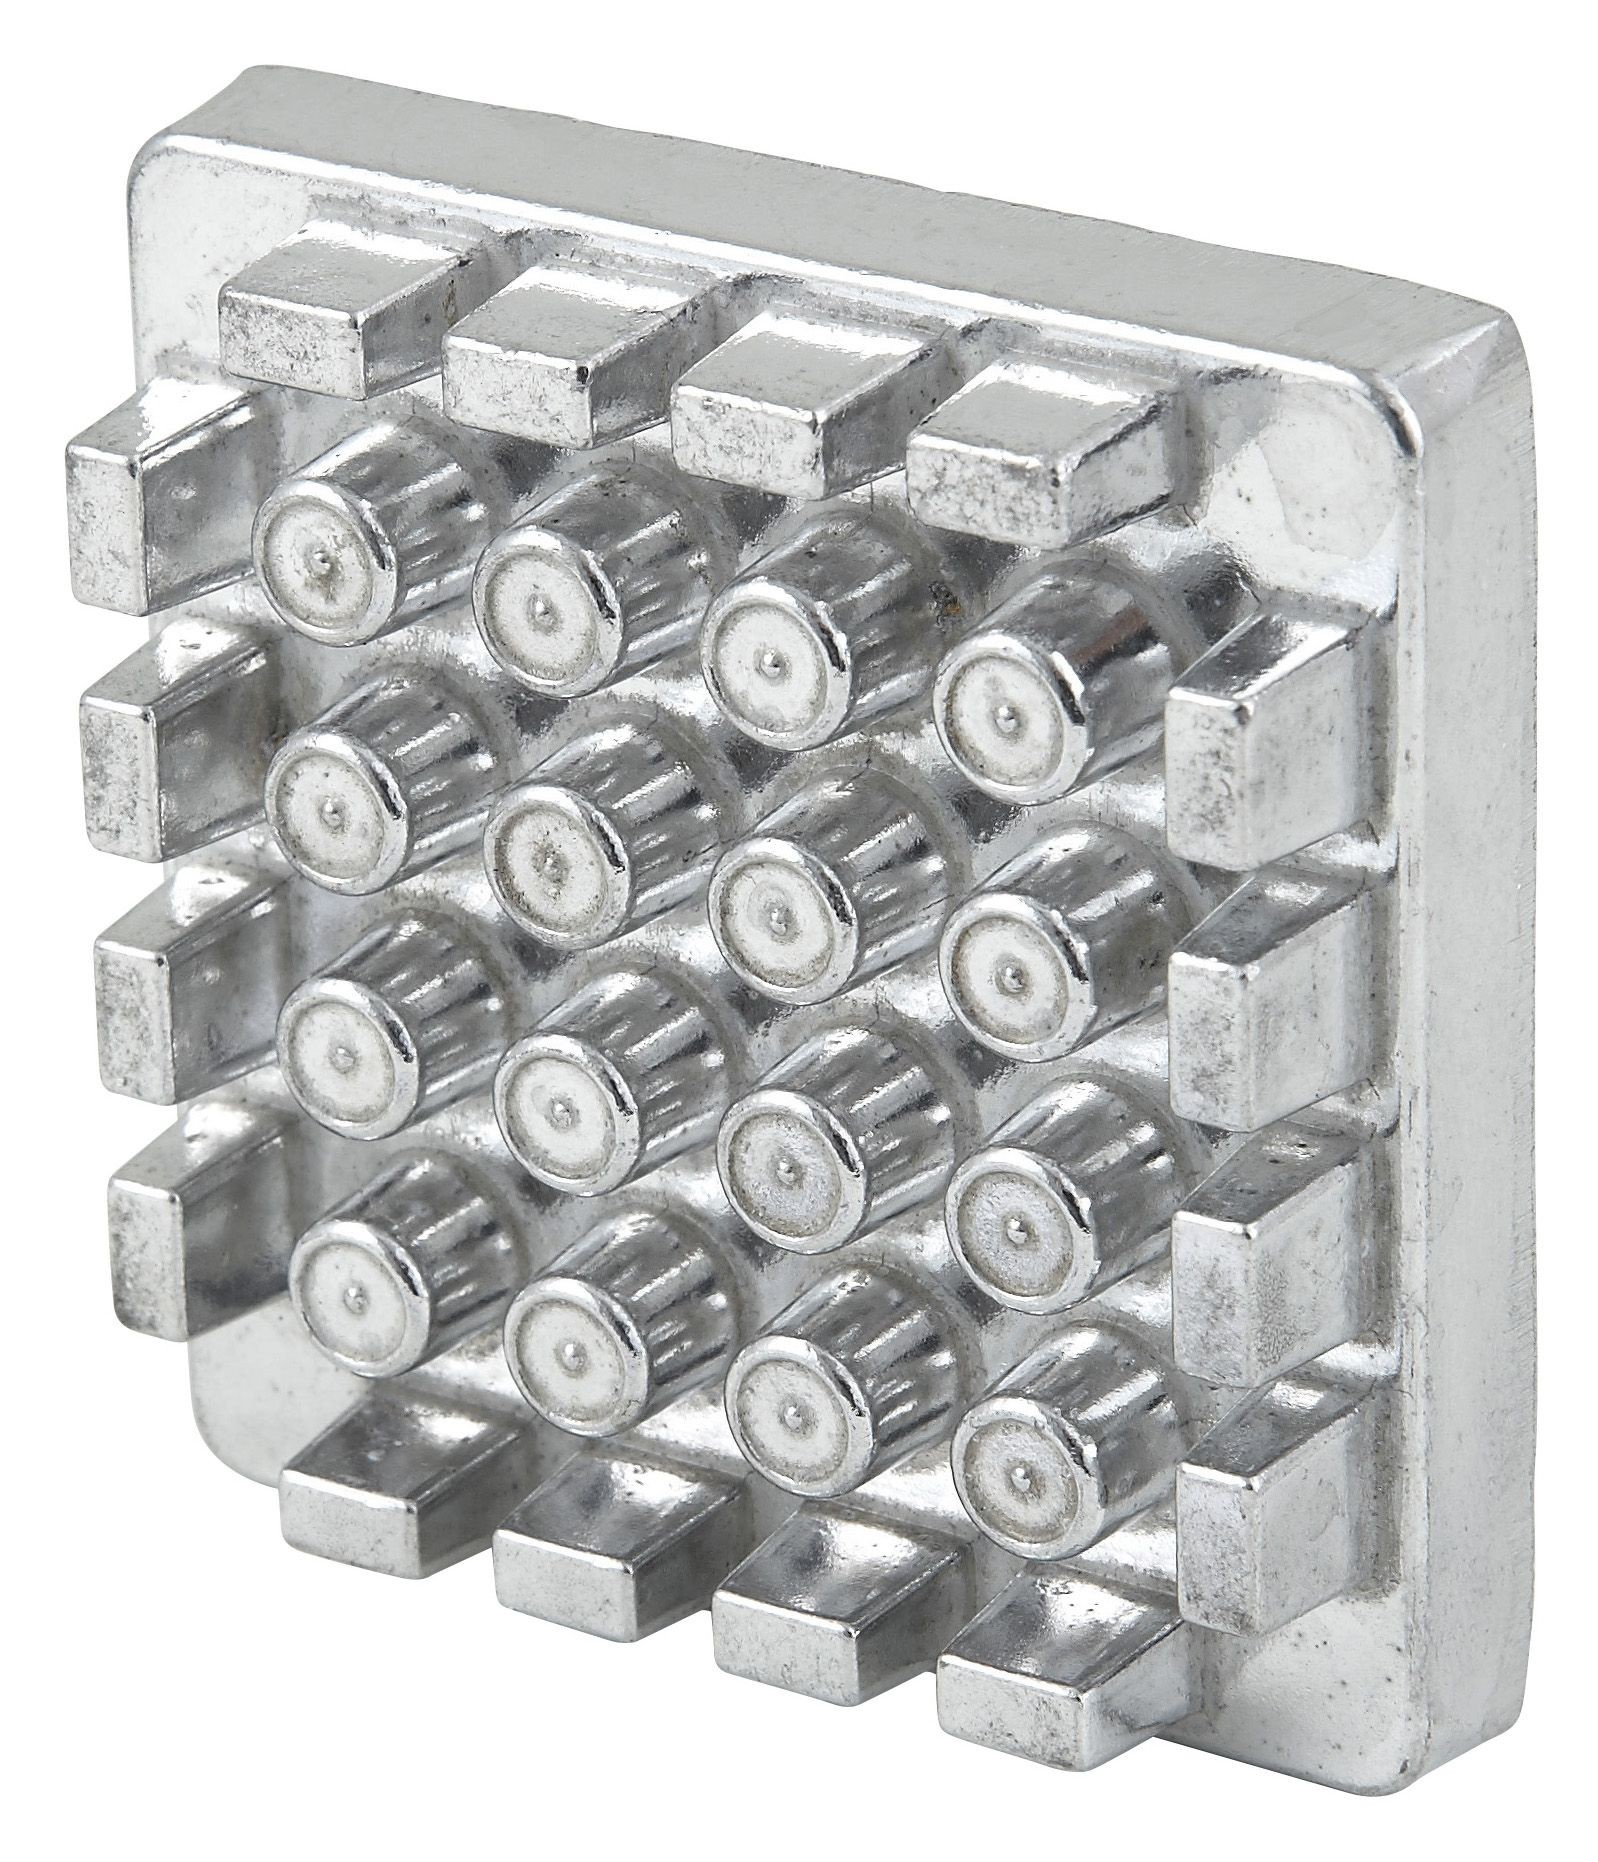 "Winco FFC-500K Pusher Block for French Fry Cutter 1/2"" Square Cuts"